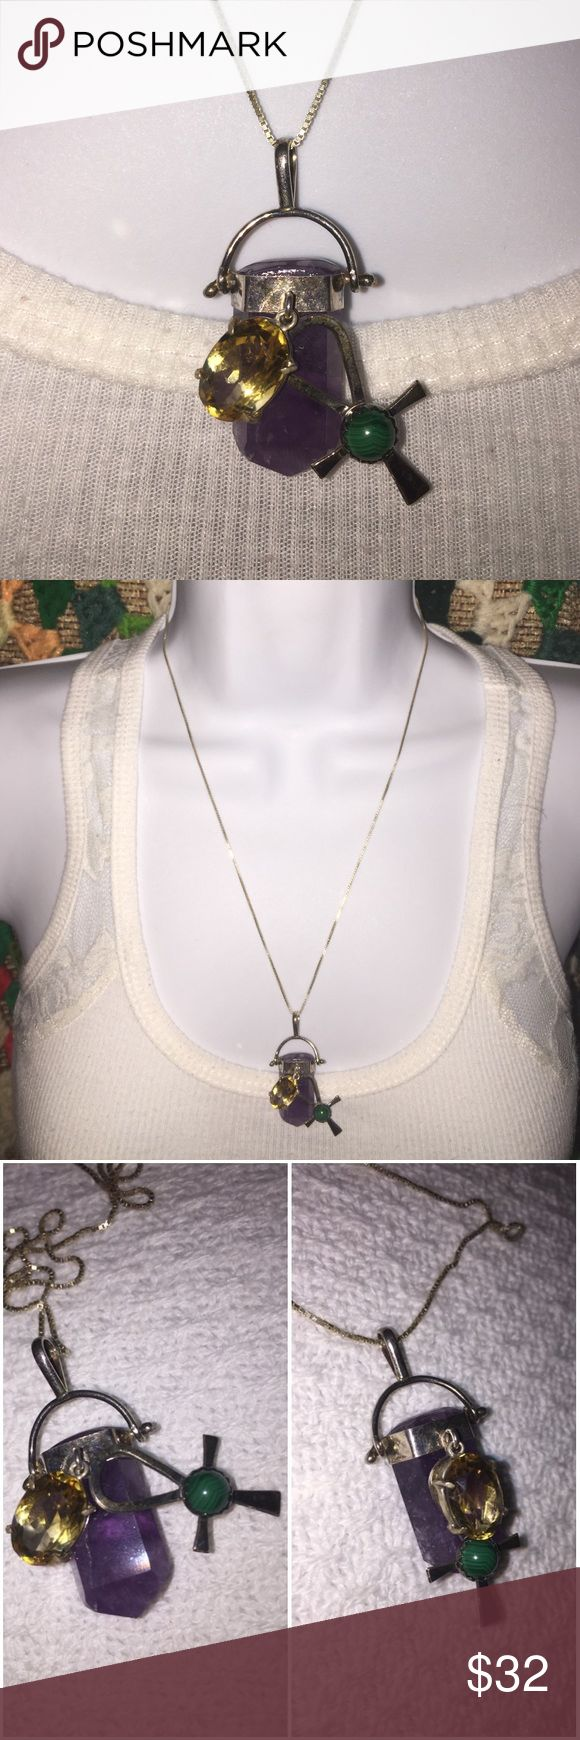 "925 Silver Amethyst Citron Jade Charm Necklace 925 Sterling Silver Genuine Amethyst, Citron, & Jade Charm necklace. Features a swing bar with a Amethyst crystal cut stone; the swing bar is functional & moves. Attached to the Amethyst pendant on front is a oval citron crystal charm pendant with a additional cross pendant with a small round Jade marbled stone in the center. Markings: ""Sterling"", ""925"", a star ""⭐️"" symbol, & number ""303 (or could be ""383"" & Initials ""AR"". Silver swing bar…"